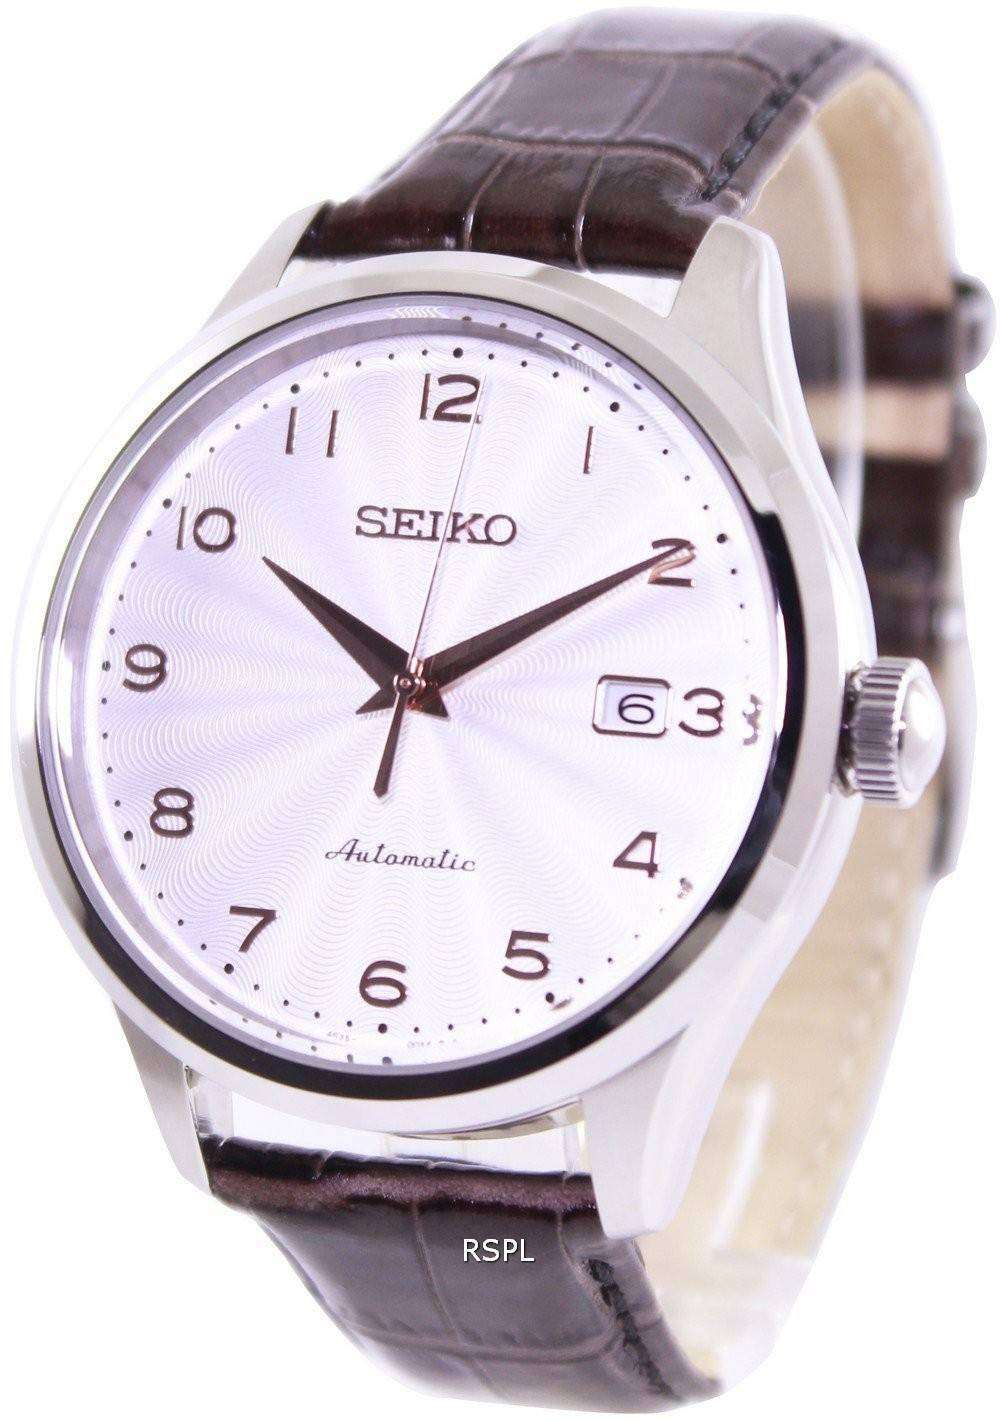 seiko automatic 100m srp705k1 srp705k mens watch zetawatches. Black Bedroom Furniture Sets. Home Design Ideas